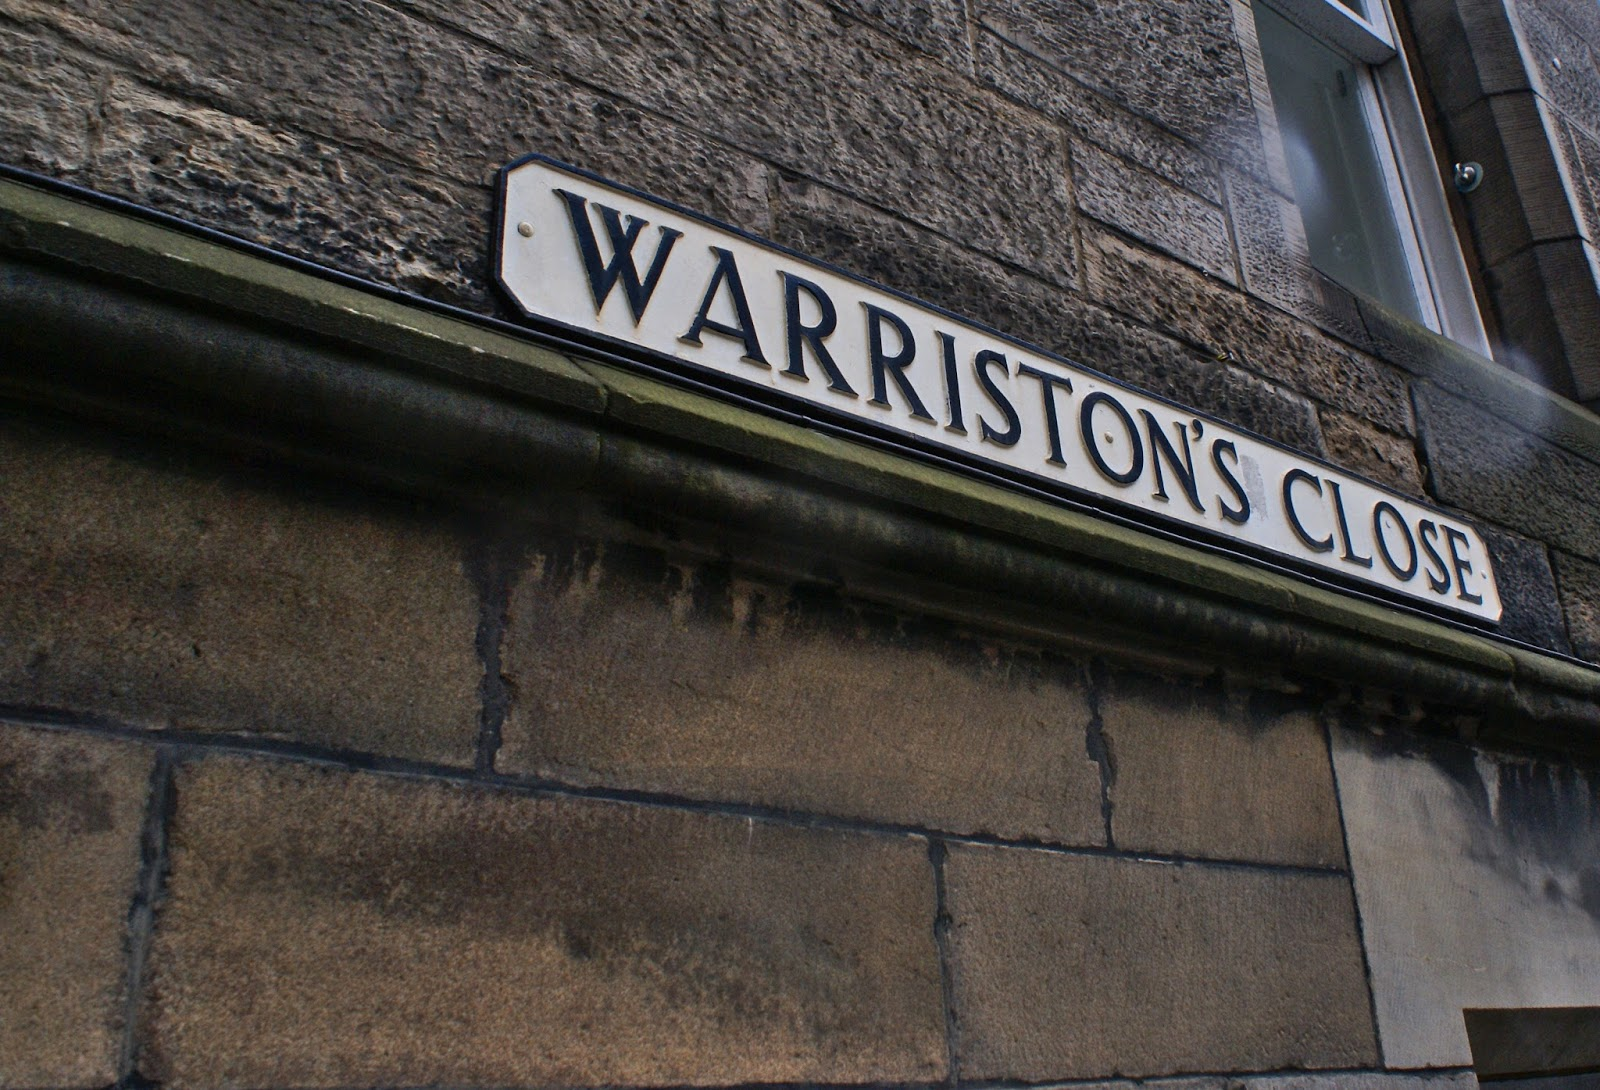 edinburgh scotland uk britain travel street sign warriston's close